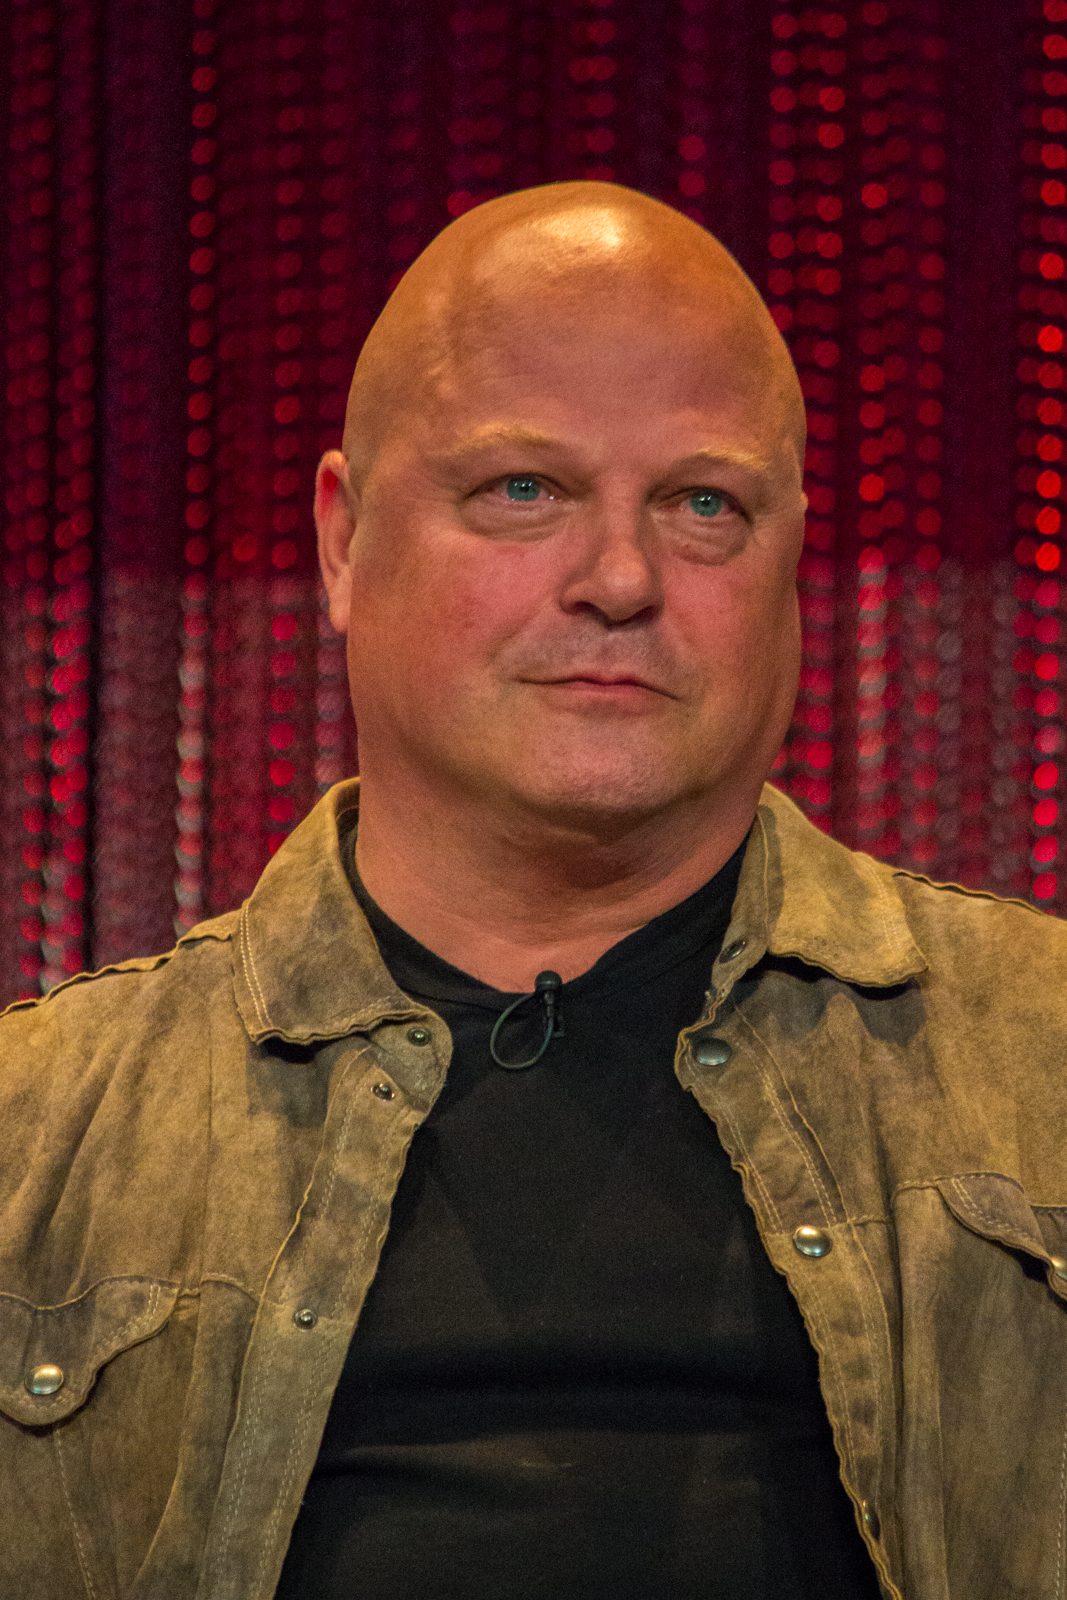 File:MichaelChiklis.jpg